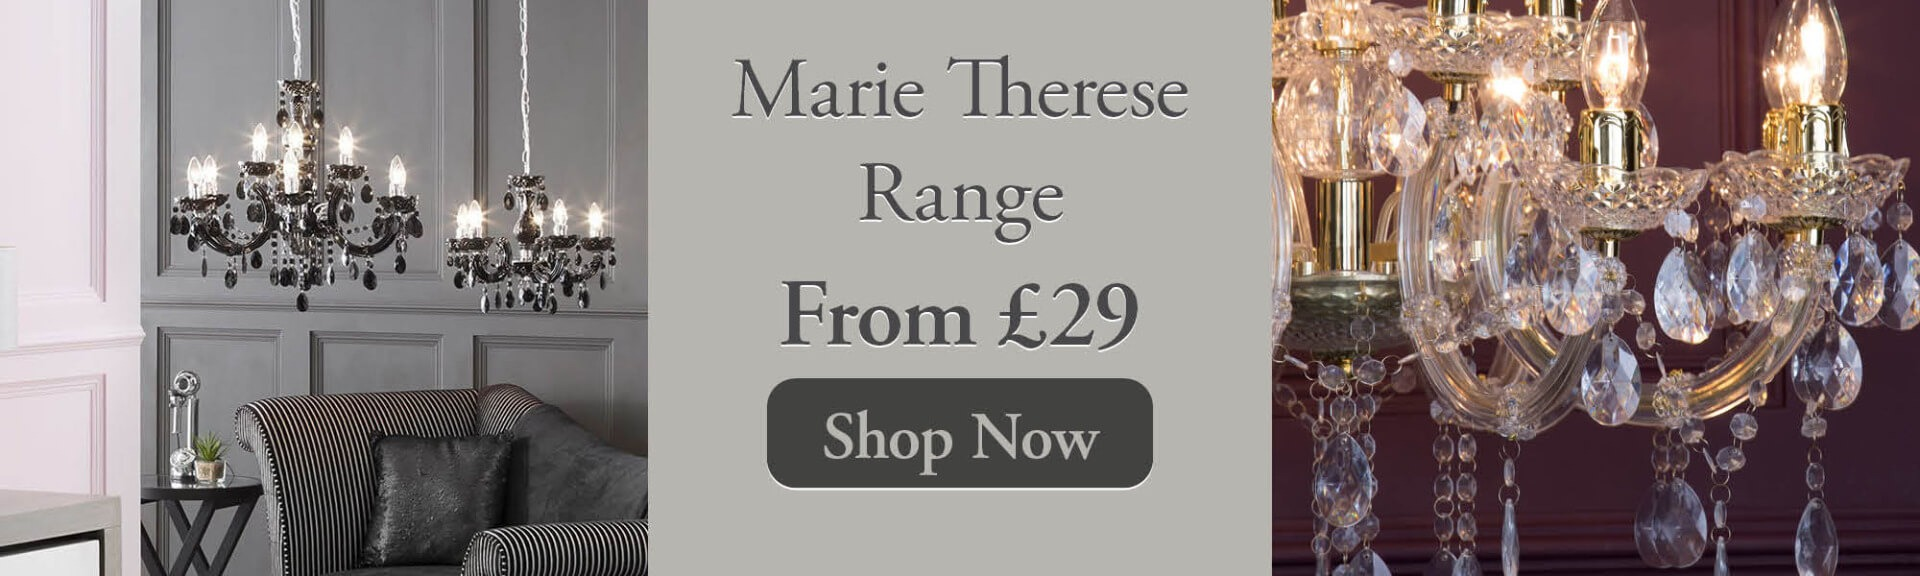 Marie Therese Range from £29